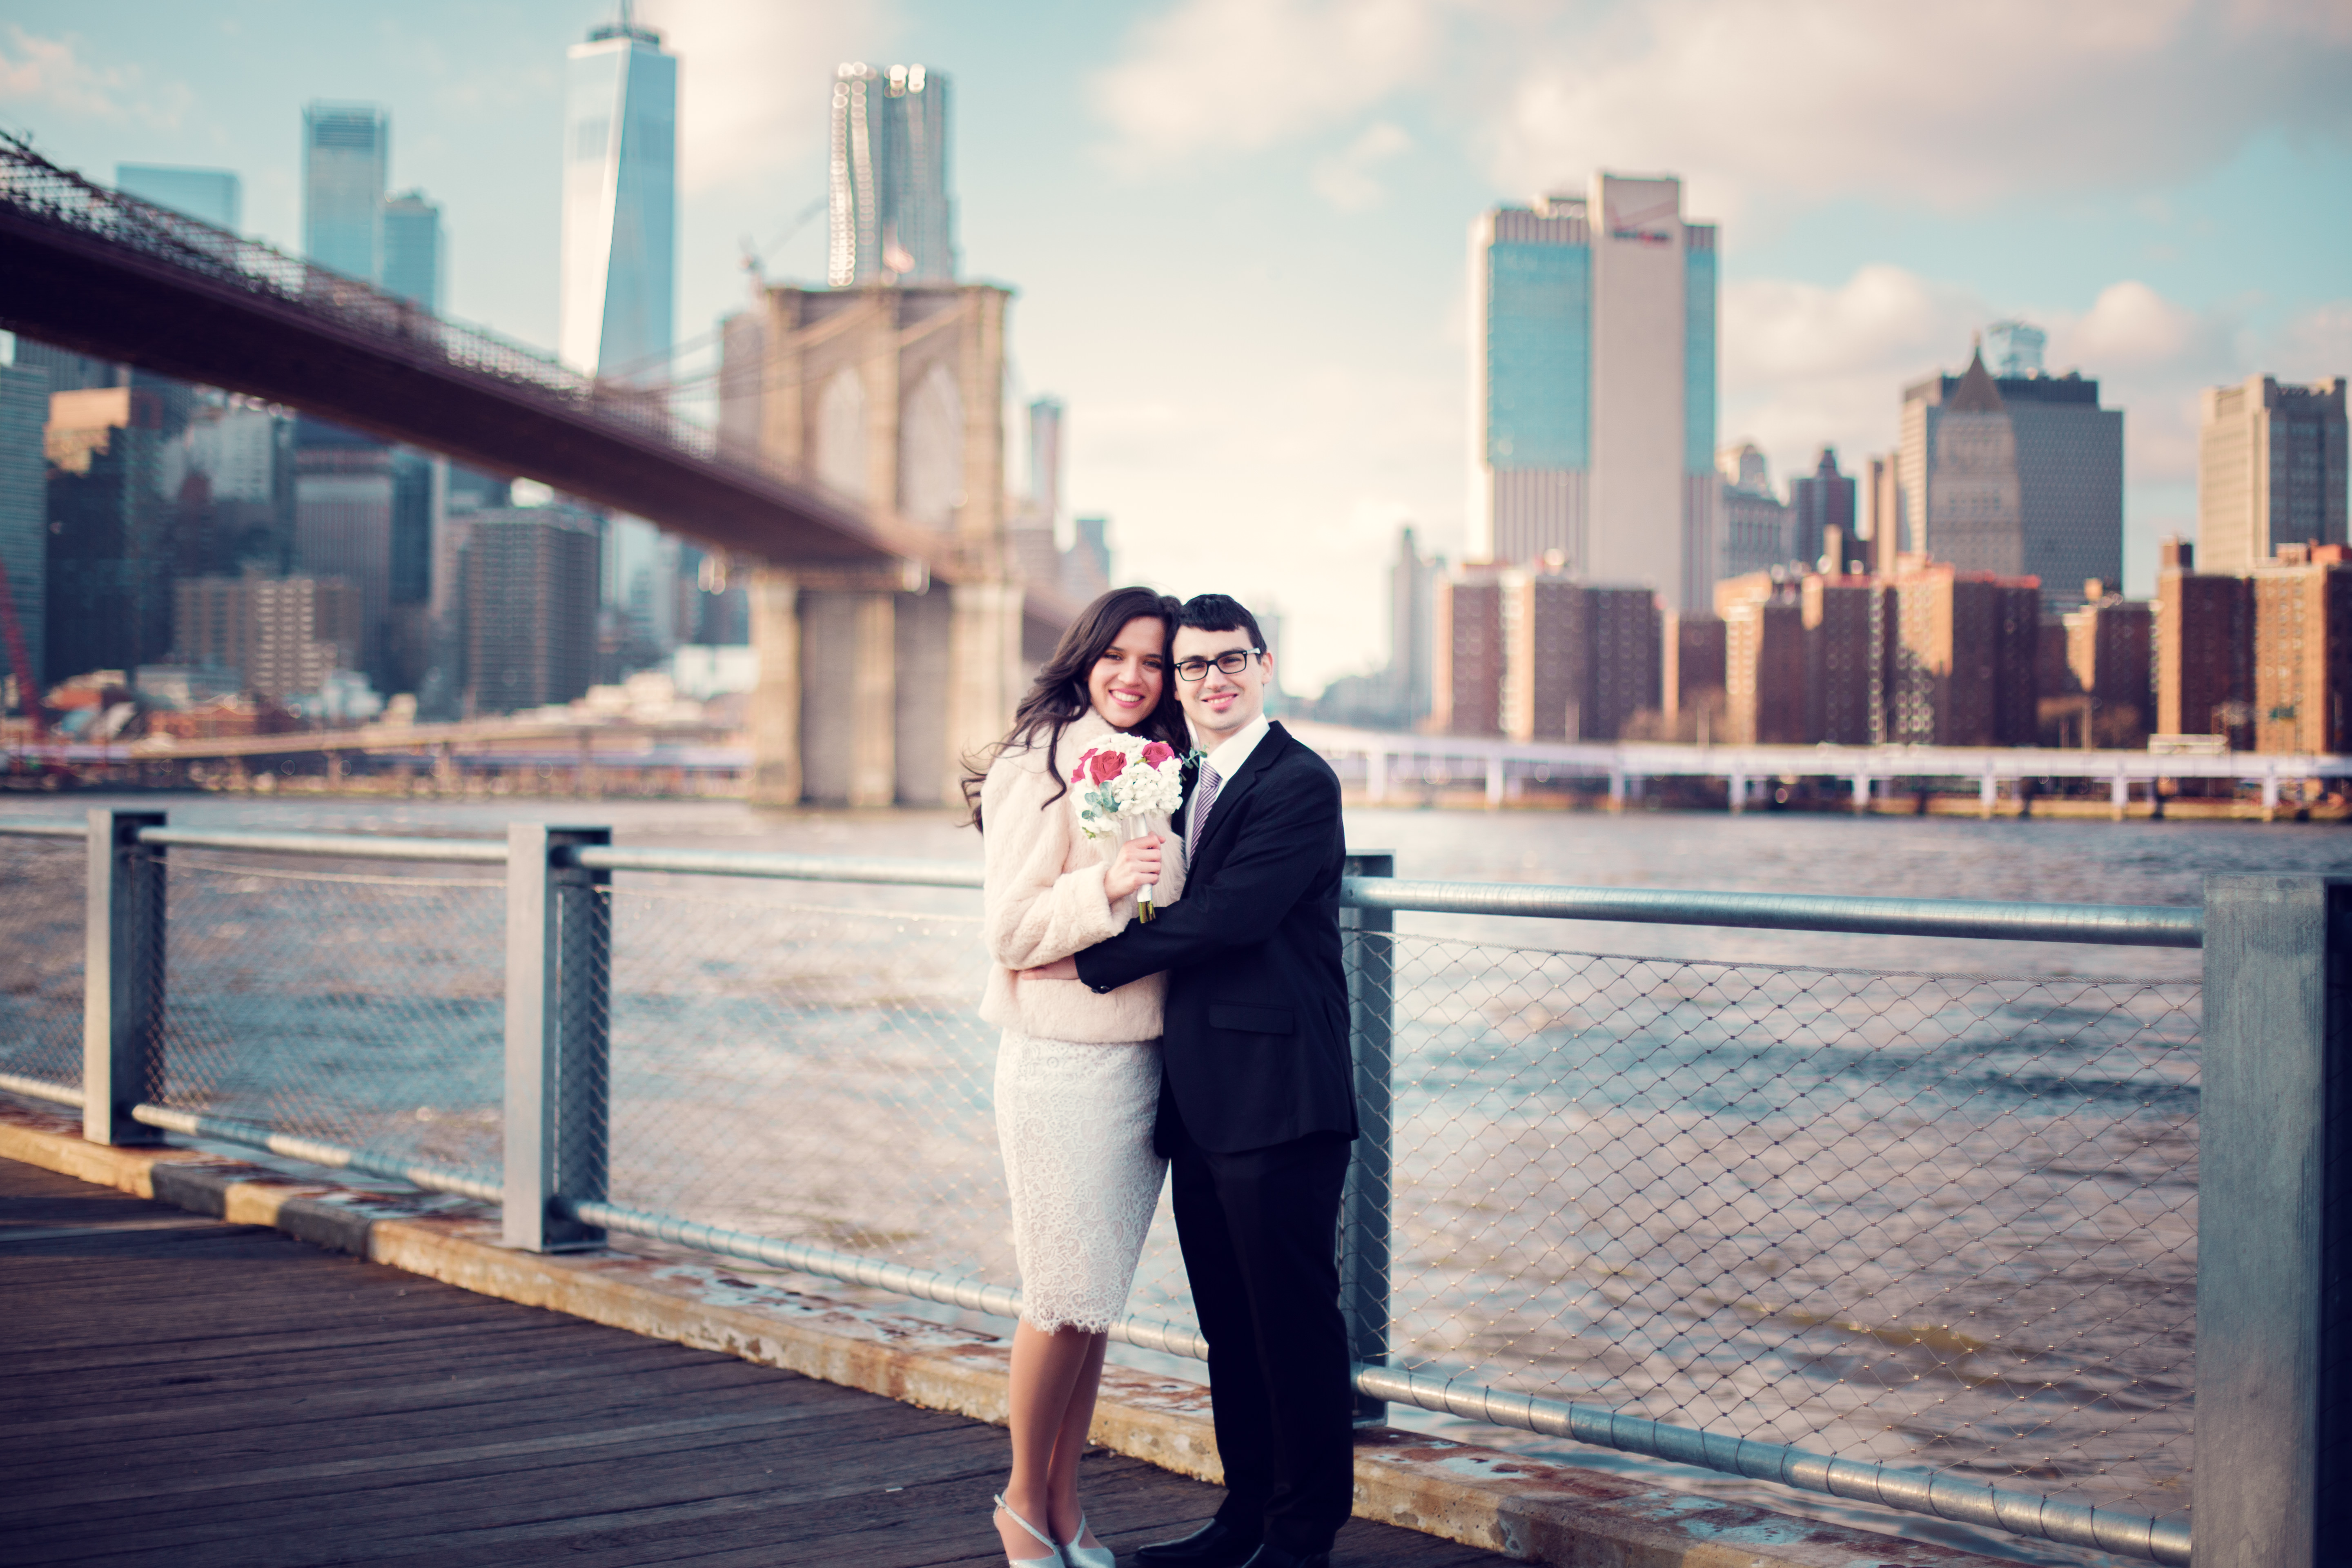 Destination Wedding Photographer in Brooklyn Bridge New York